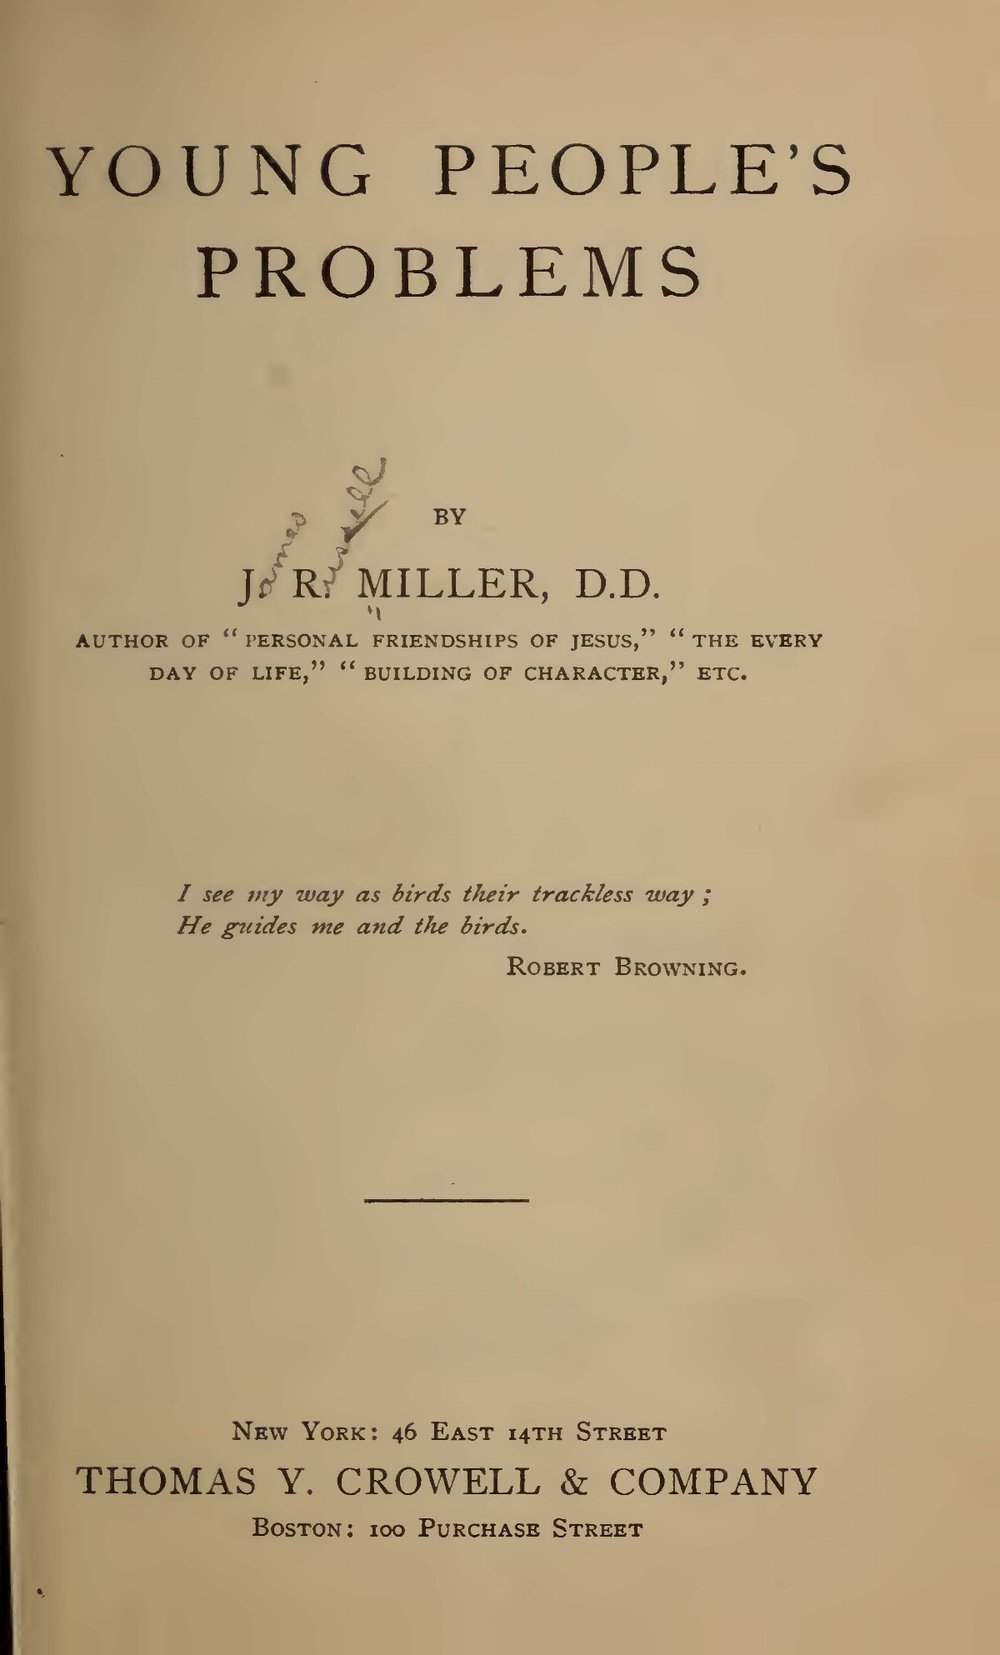 Miller, James Russell, Young People's Problems Title Page.jpg